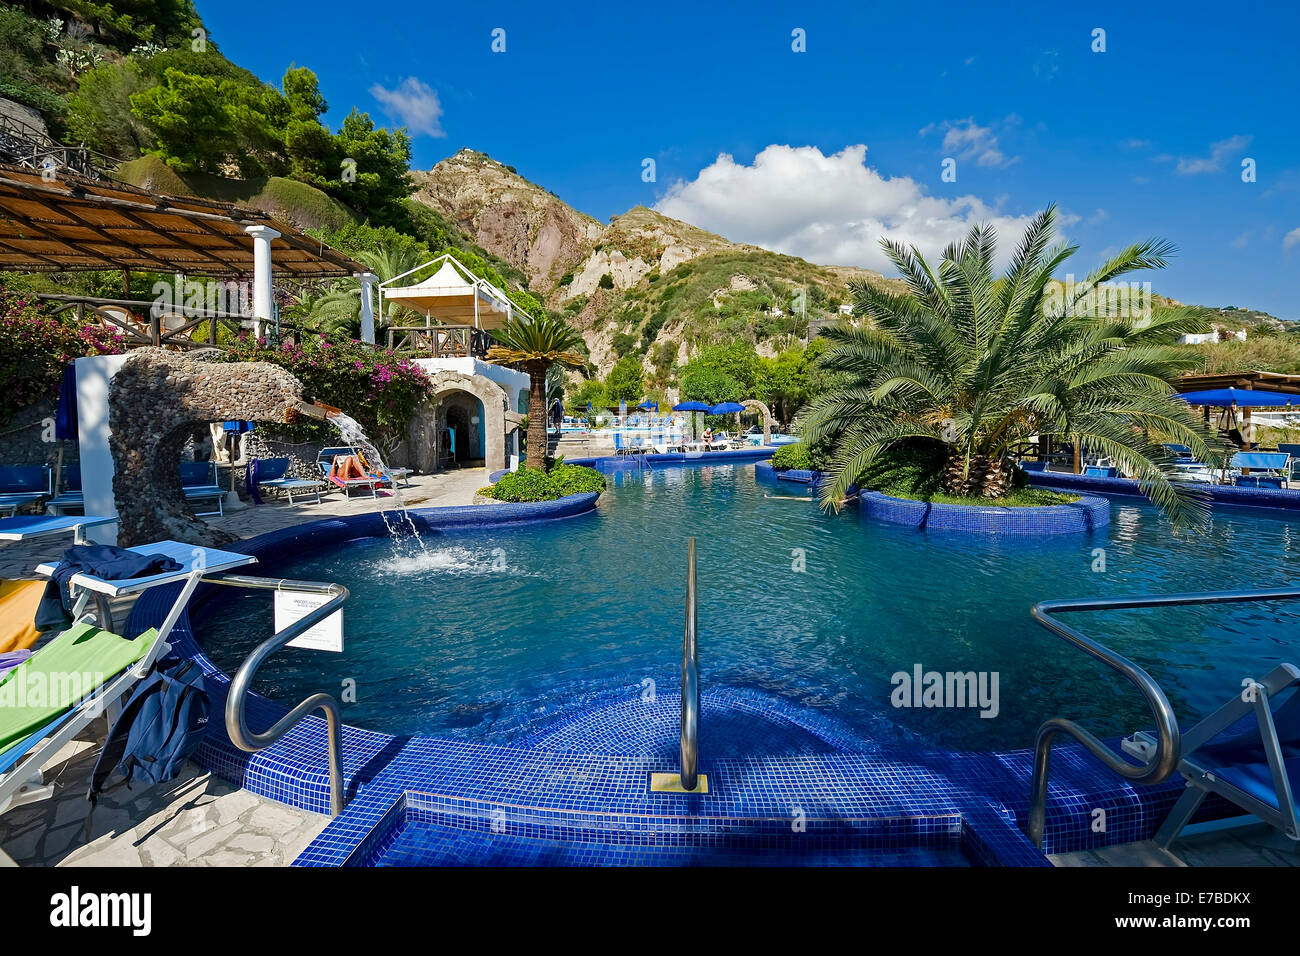 Bath Thermal Spa Stock Photos & Bath Thermal Spa Stock Images - Alamy